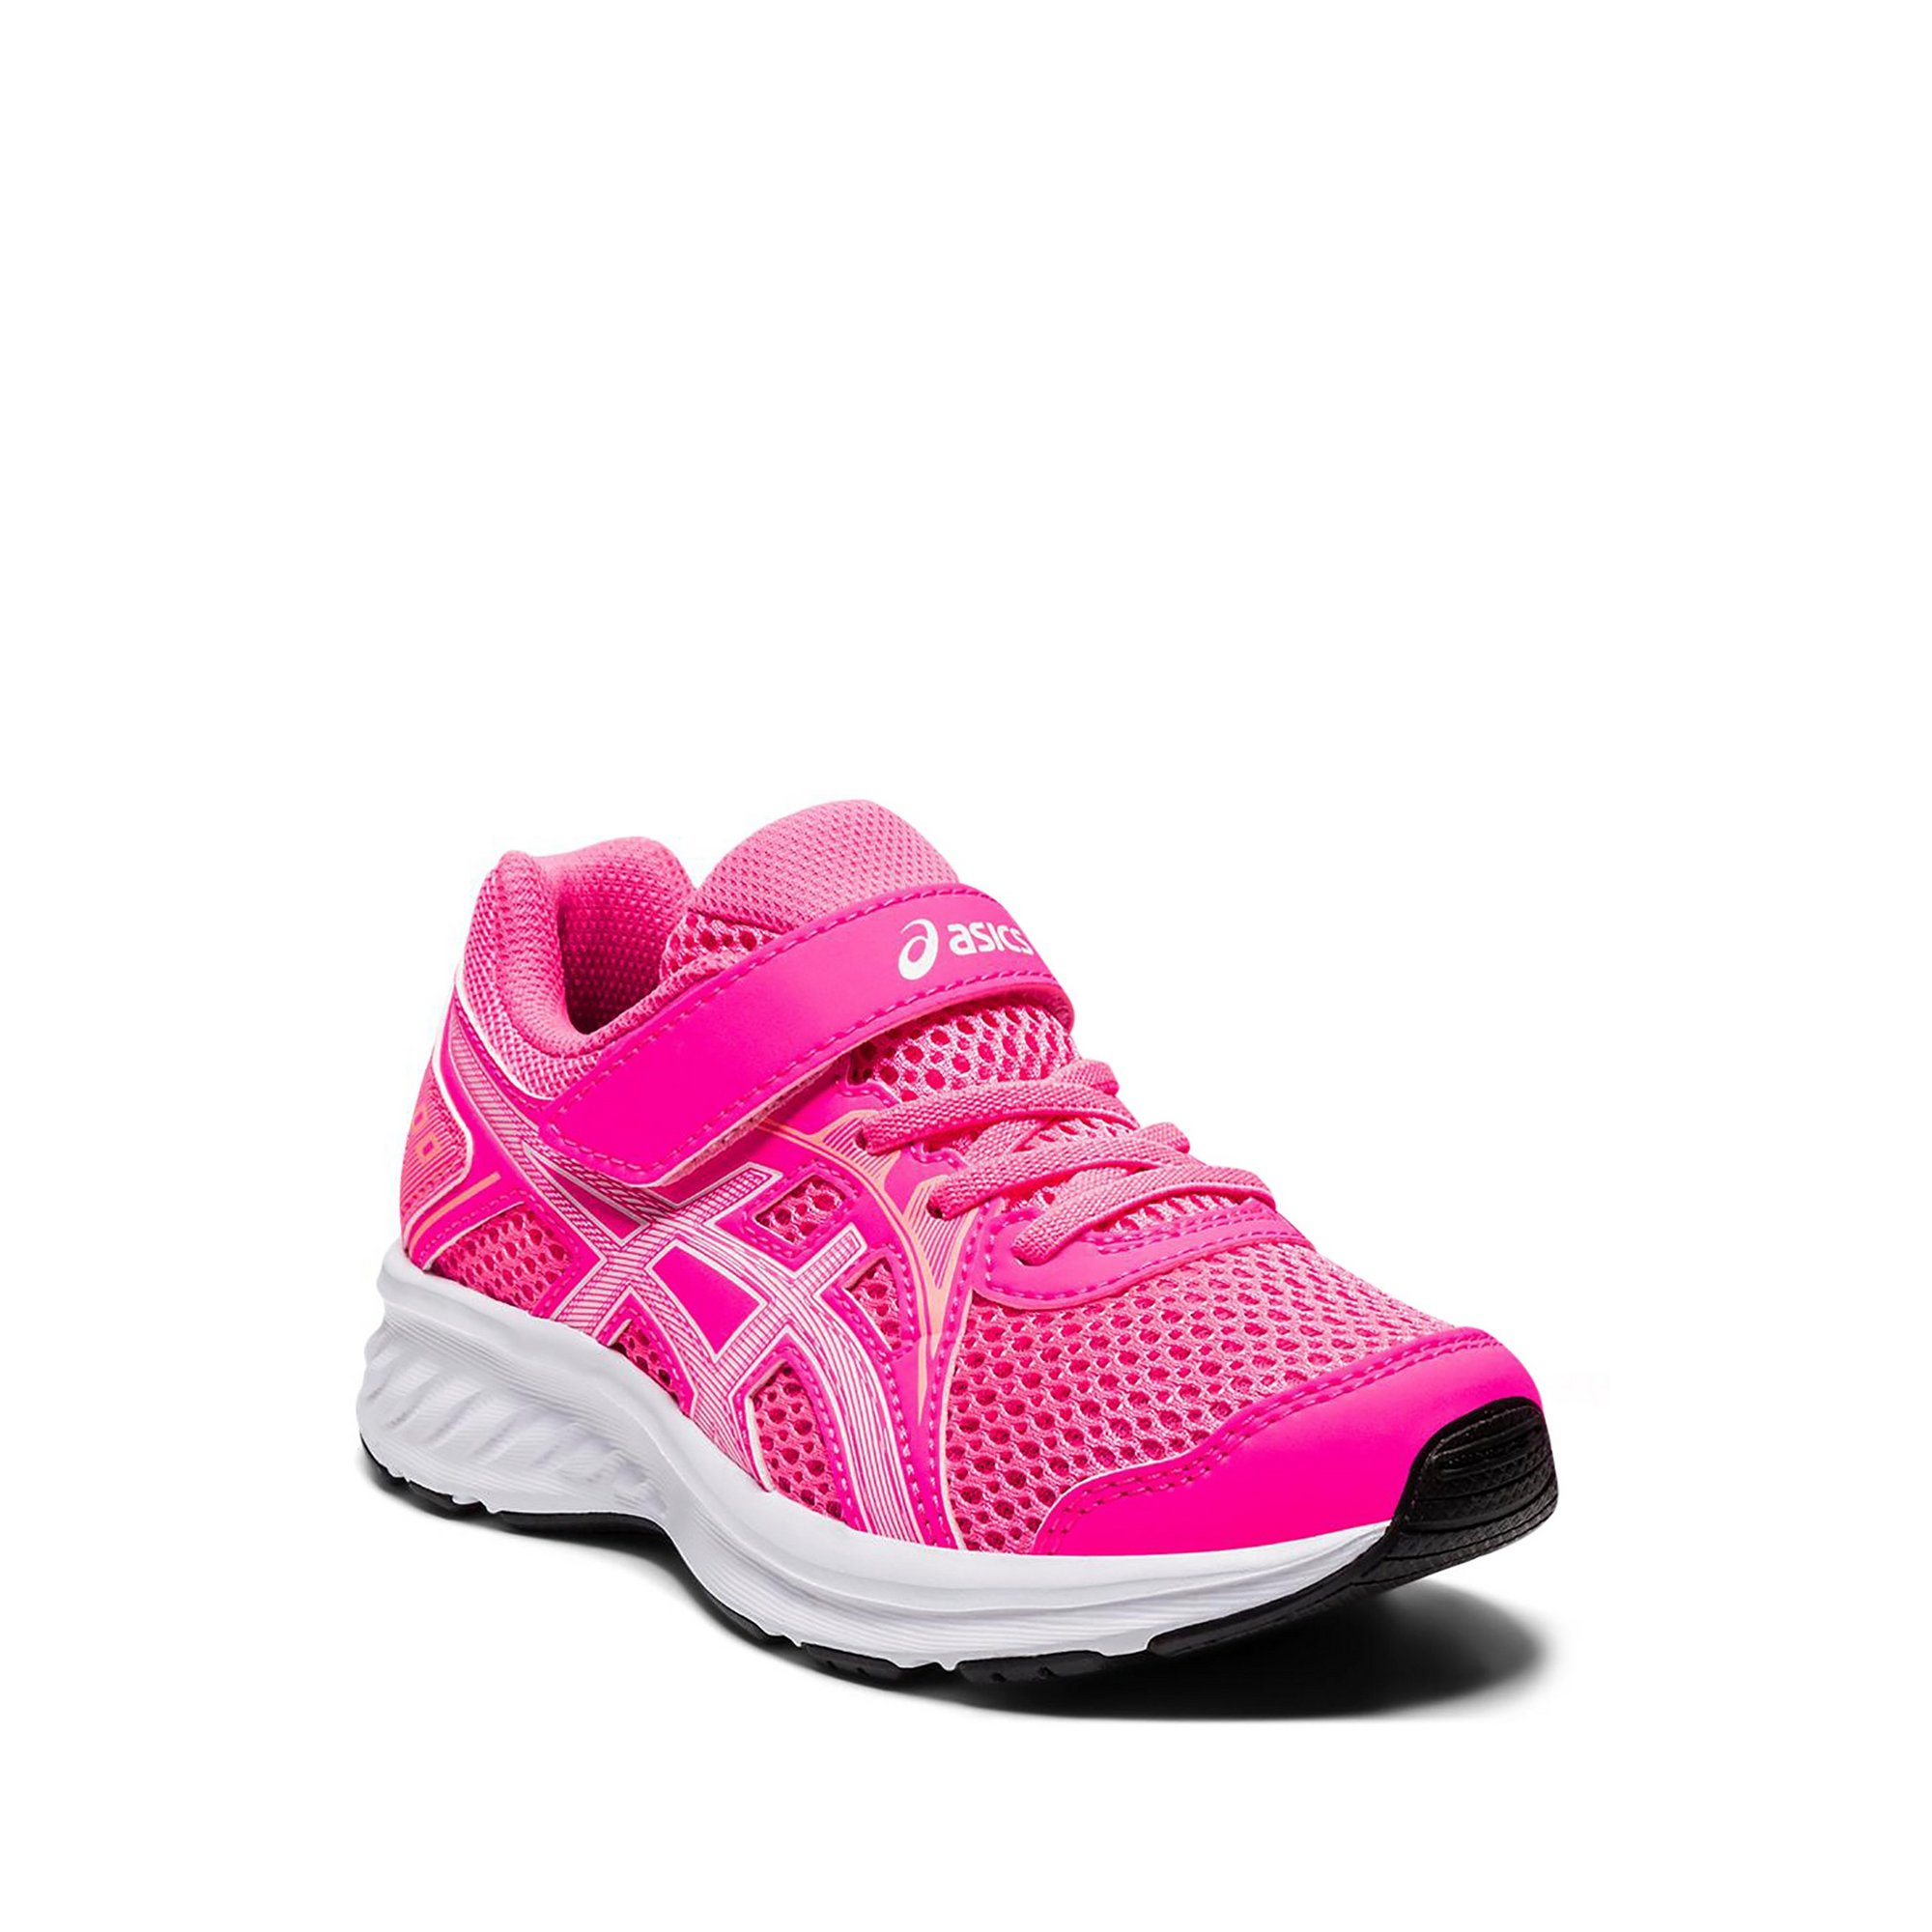 Image of Asics Jolt 2 PS Trainers